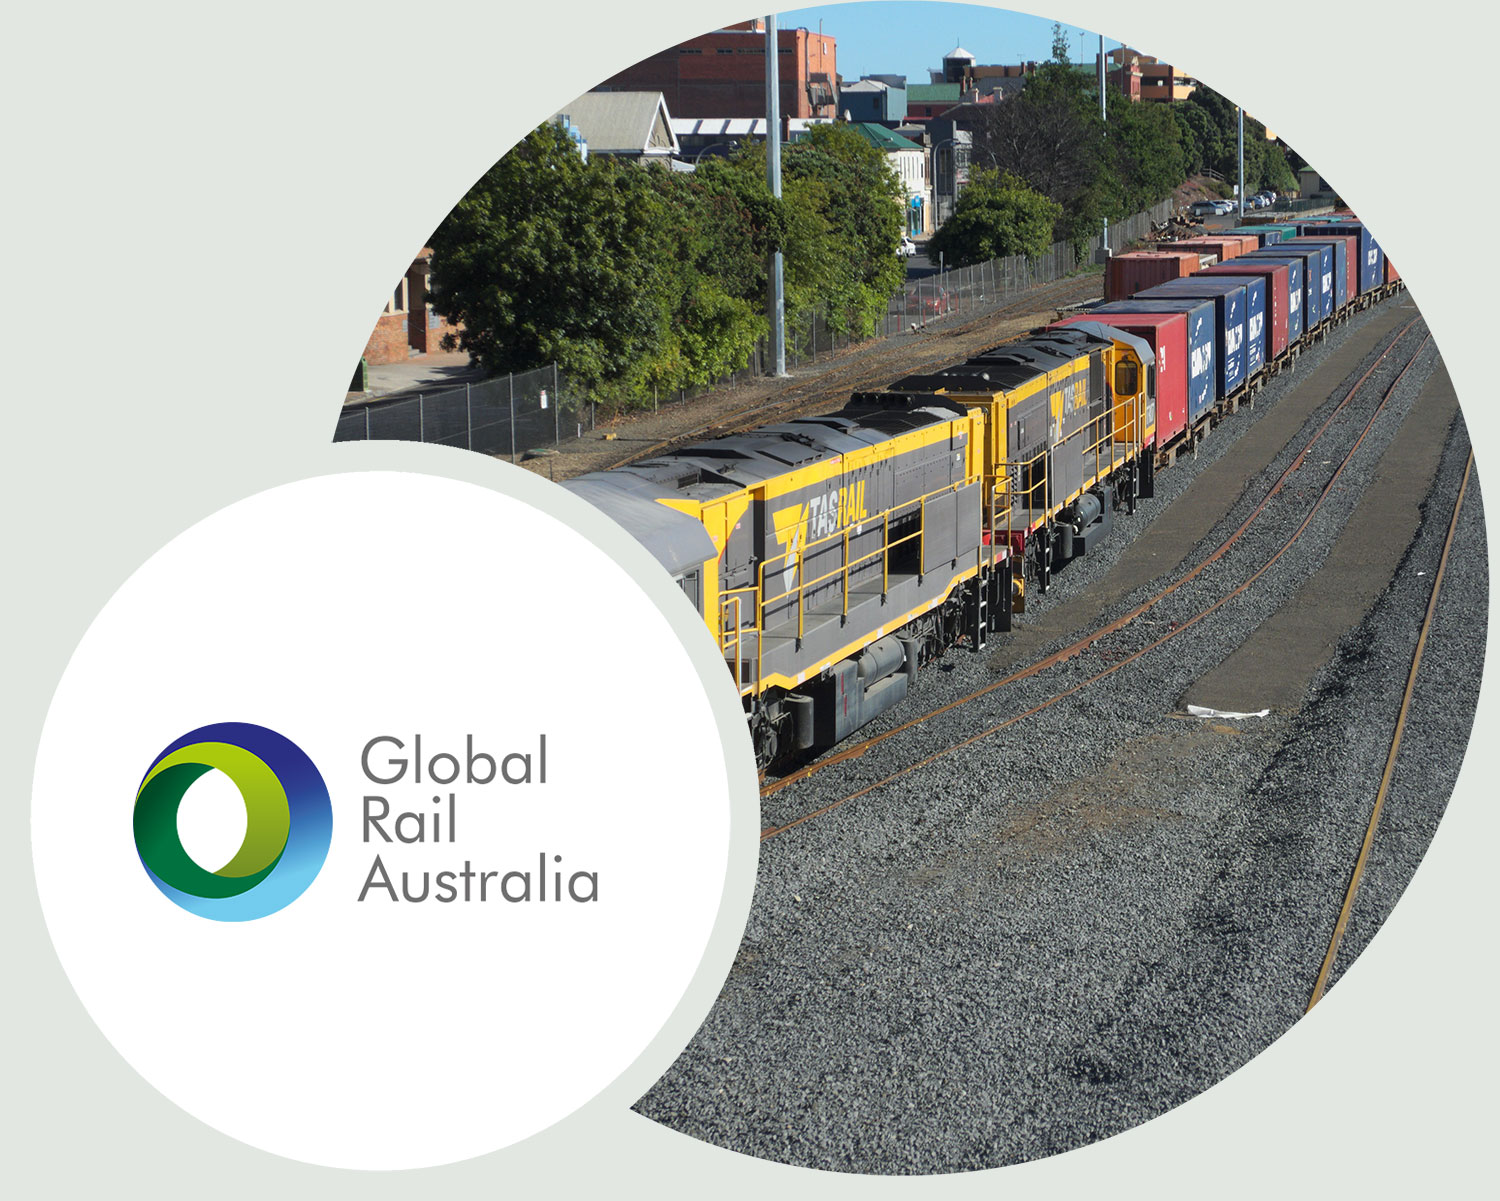 Global-Rail-Australia-Secures-Track-Work-Contract-for-Tas-Rail_cirs